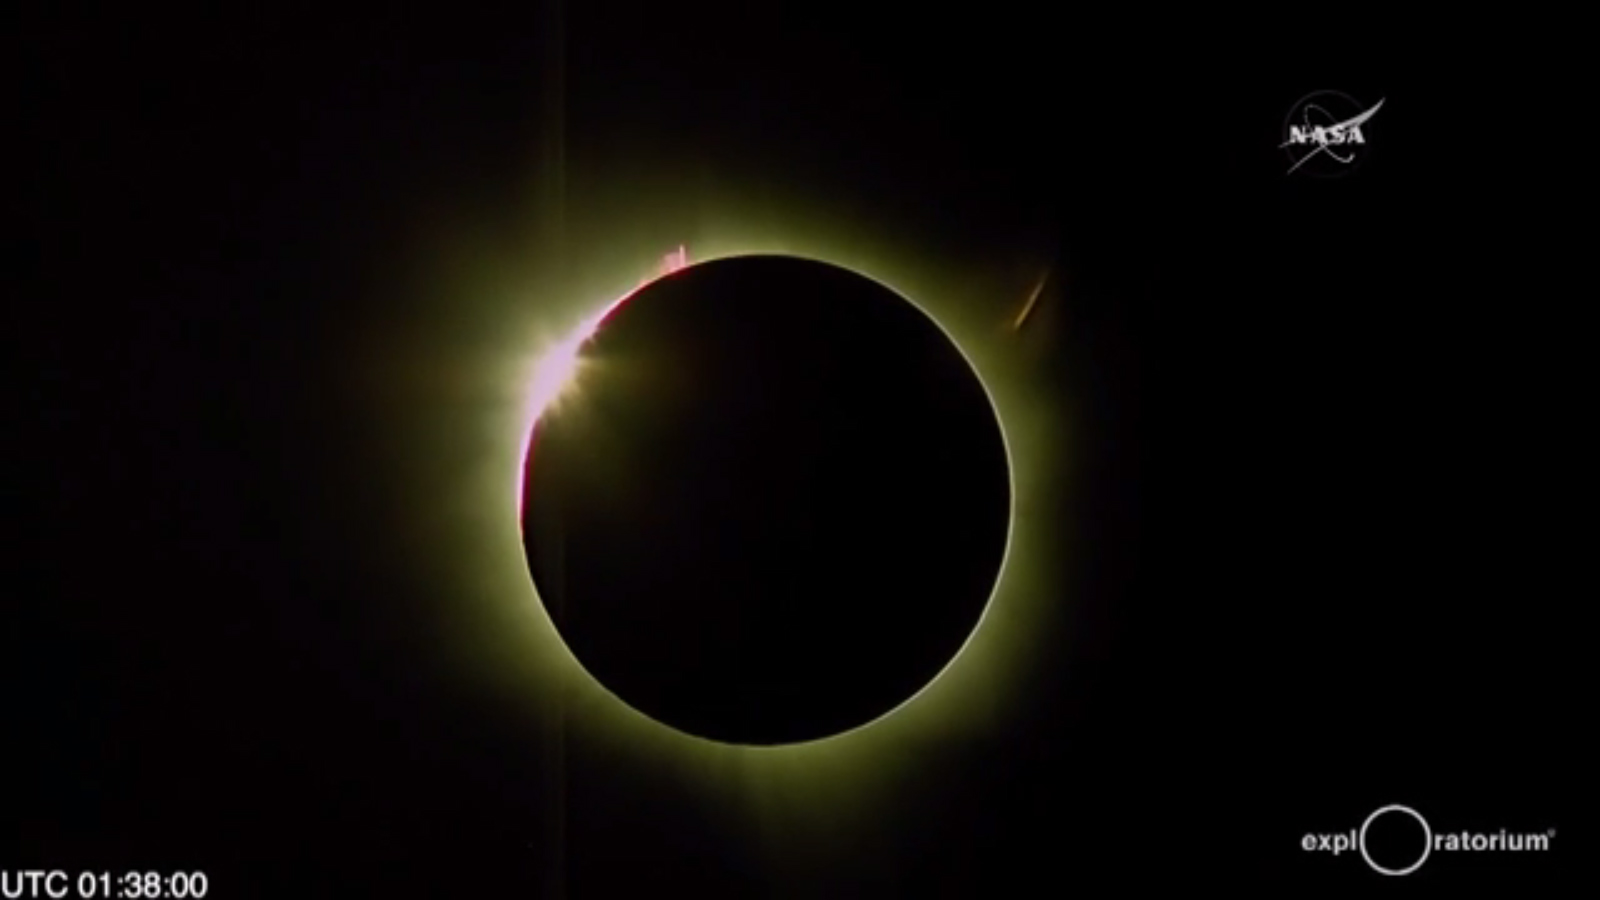 [Image: total-solar-eclipse-2016-nasa-totality.j...side|660:*]